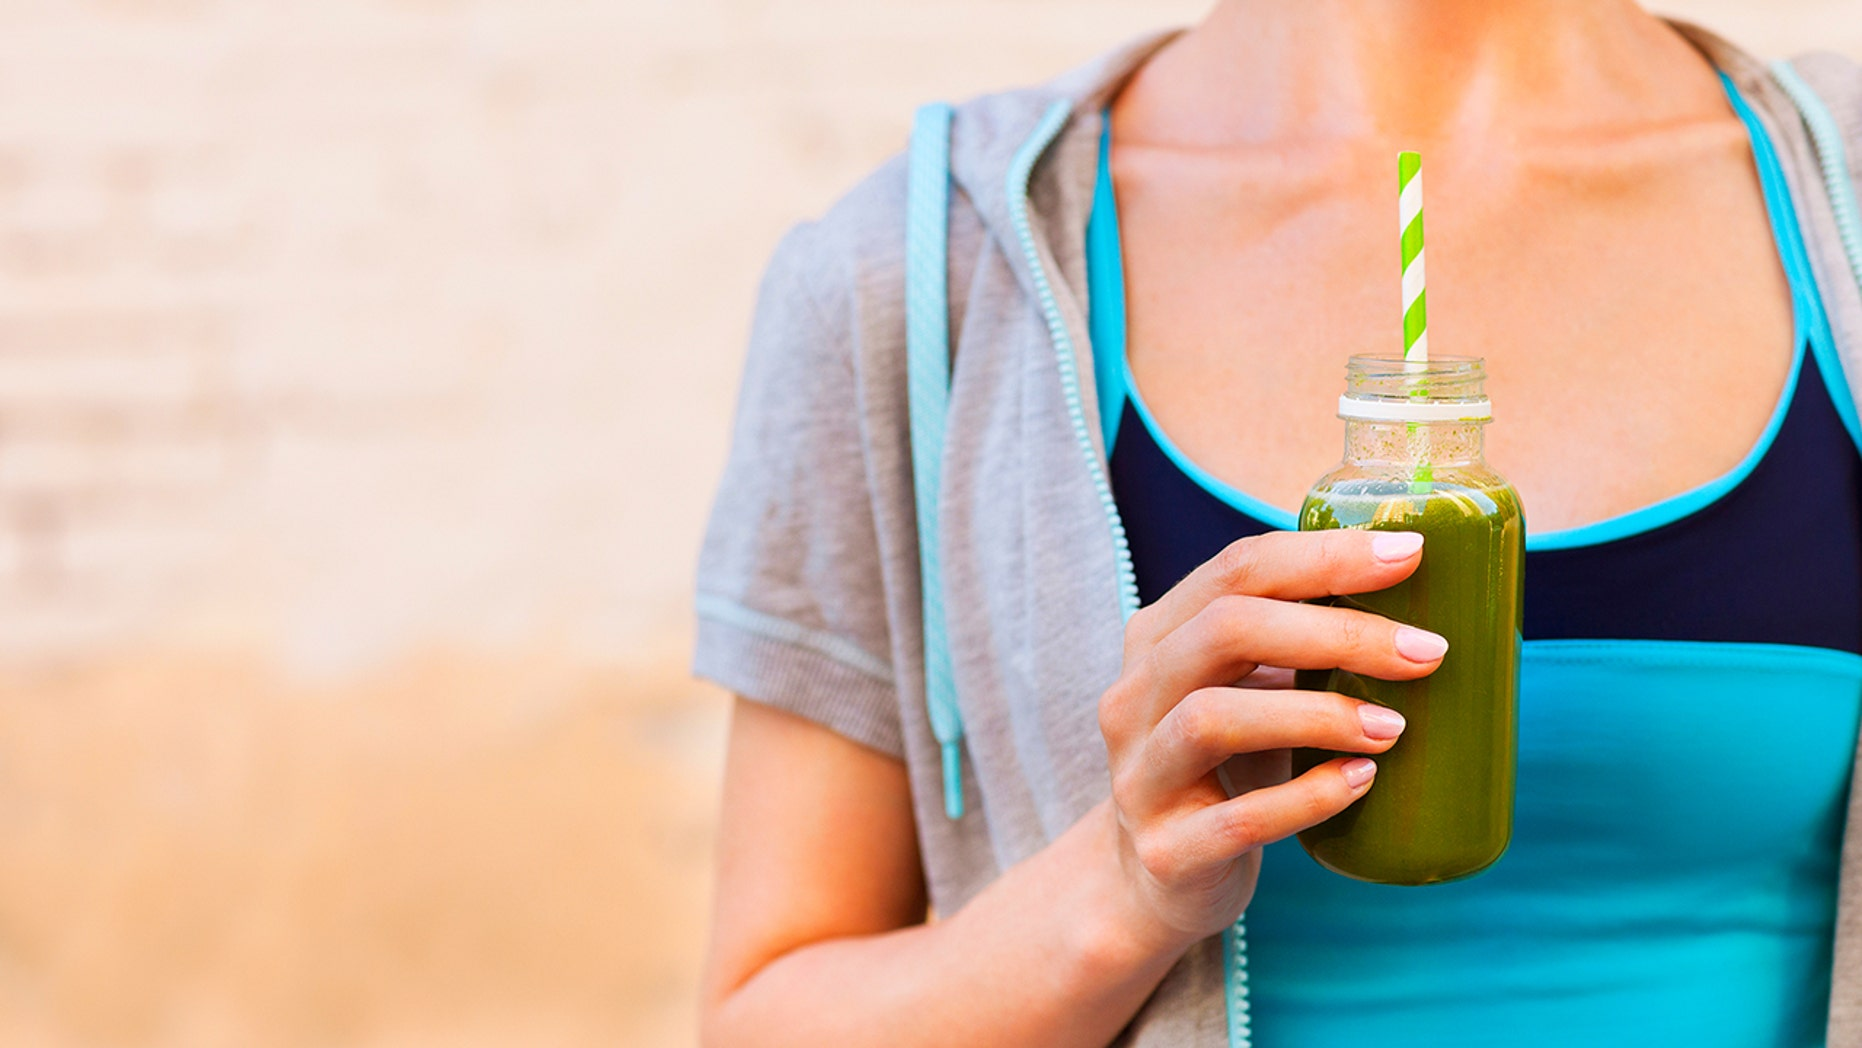 These five habits might seem healthy, but they're really not